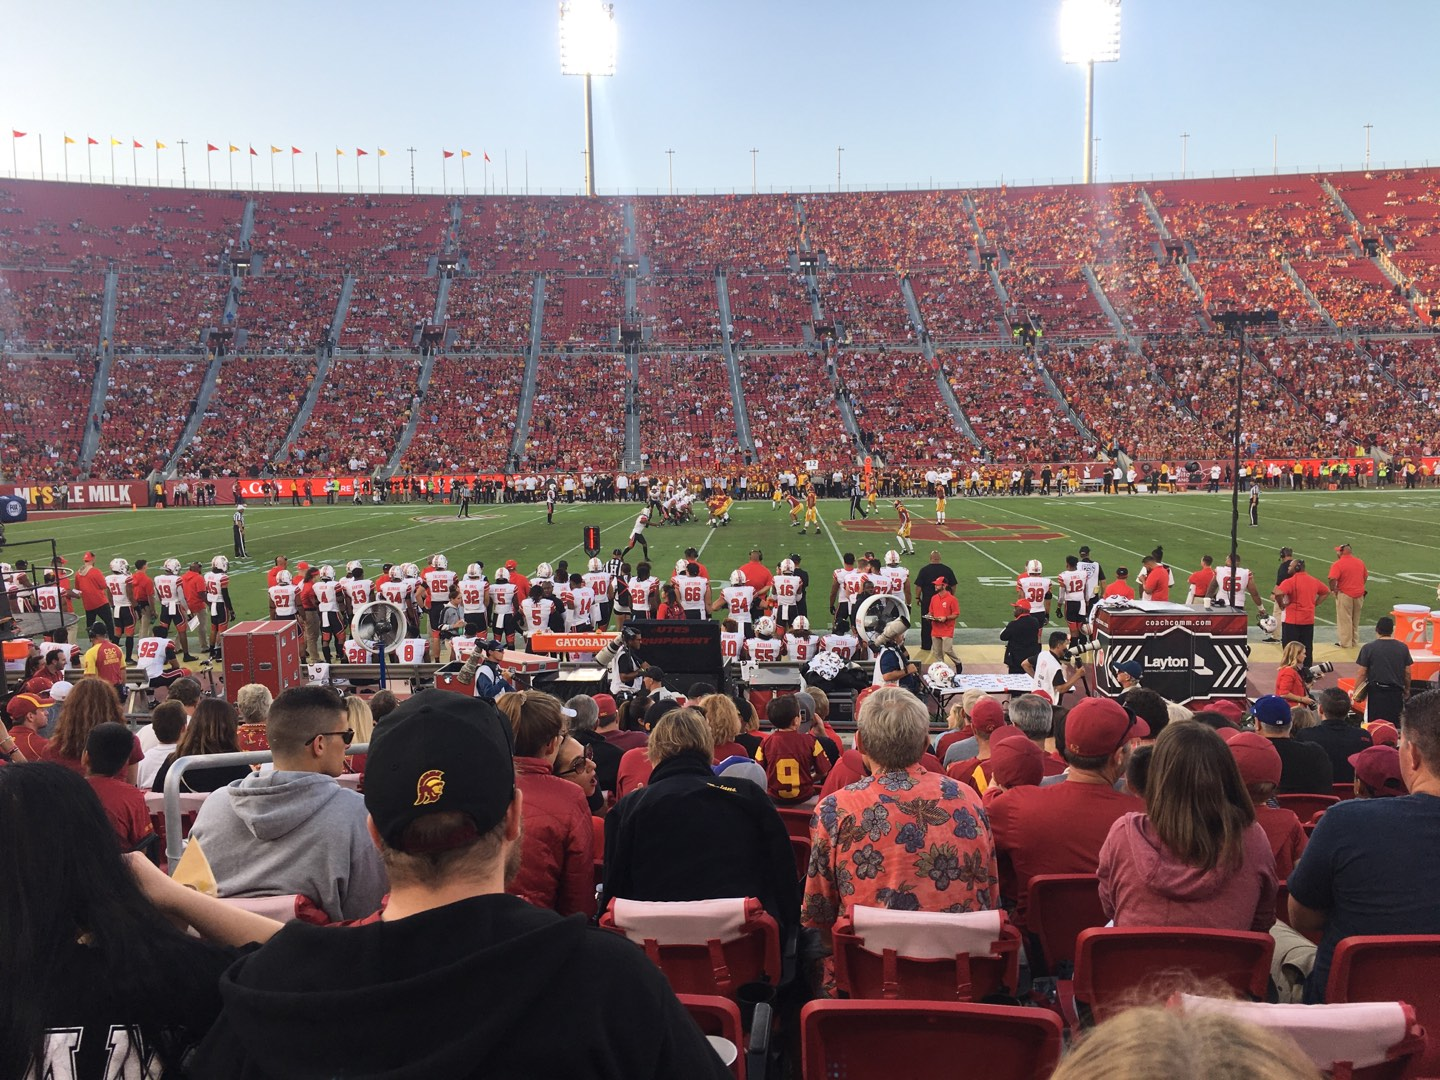 Los Angeles Memorial Coliseum Section 107A Row 12 Seat 11